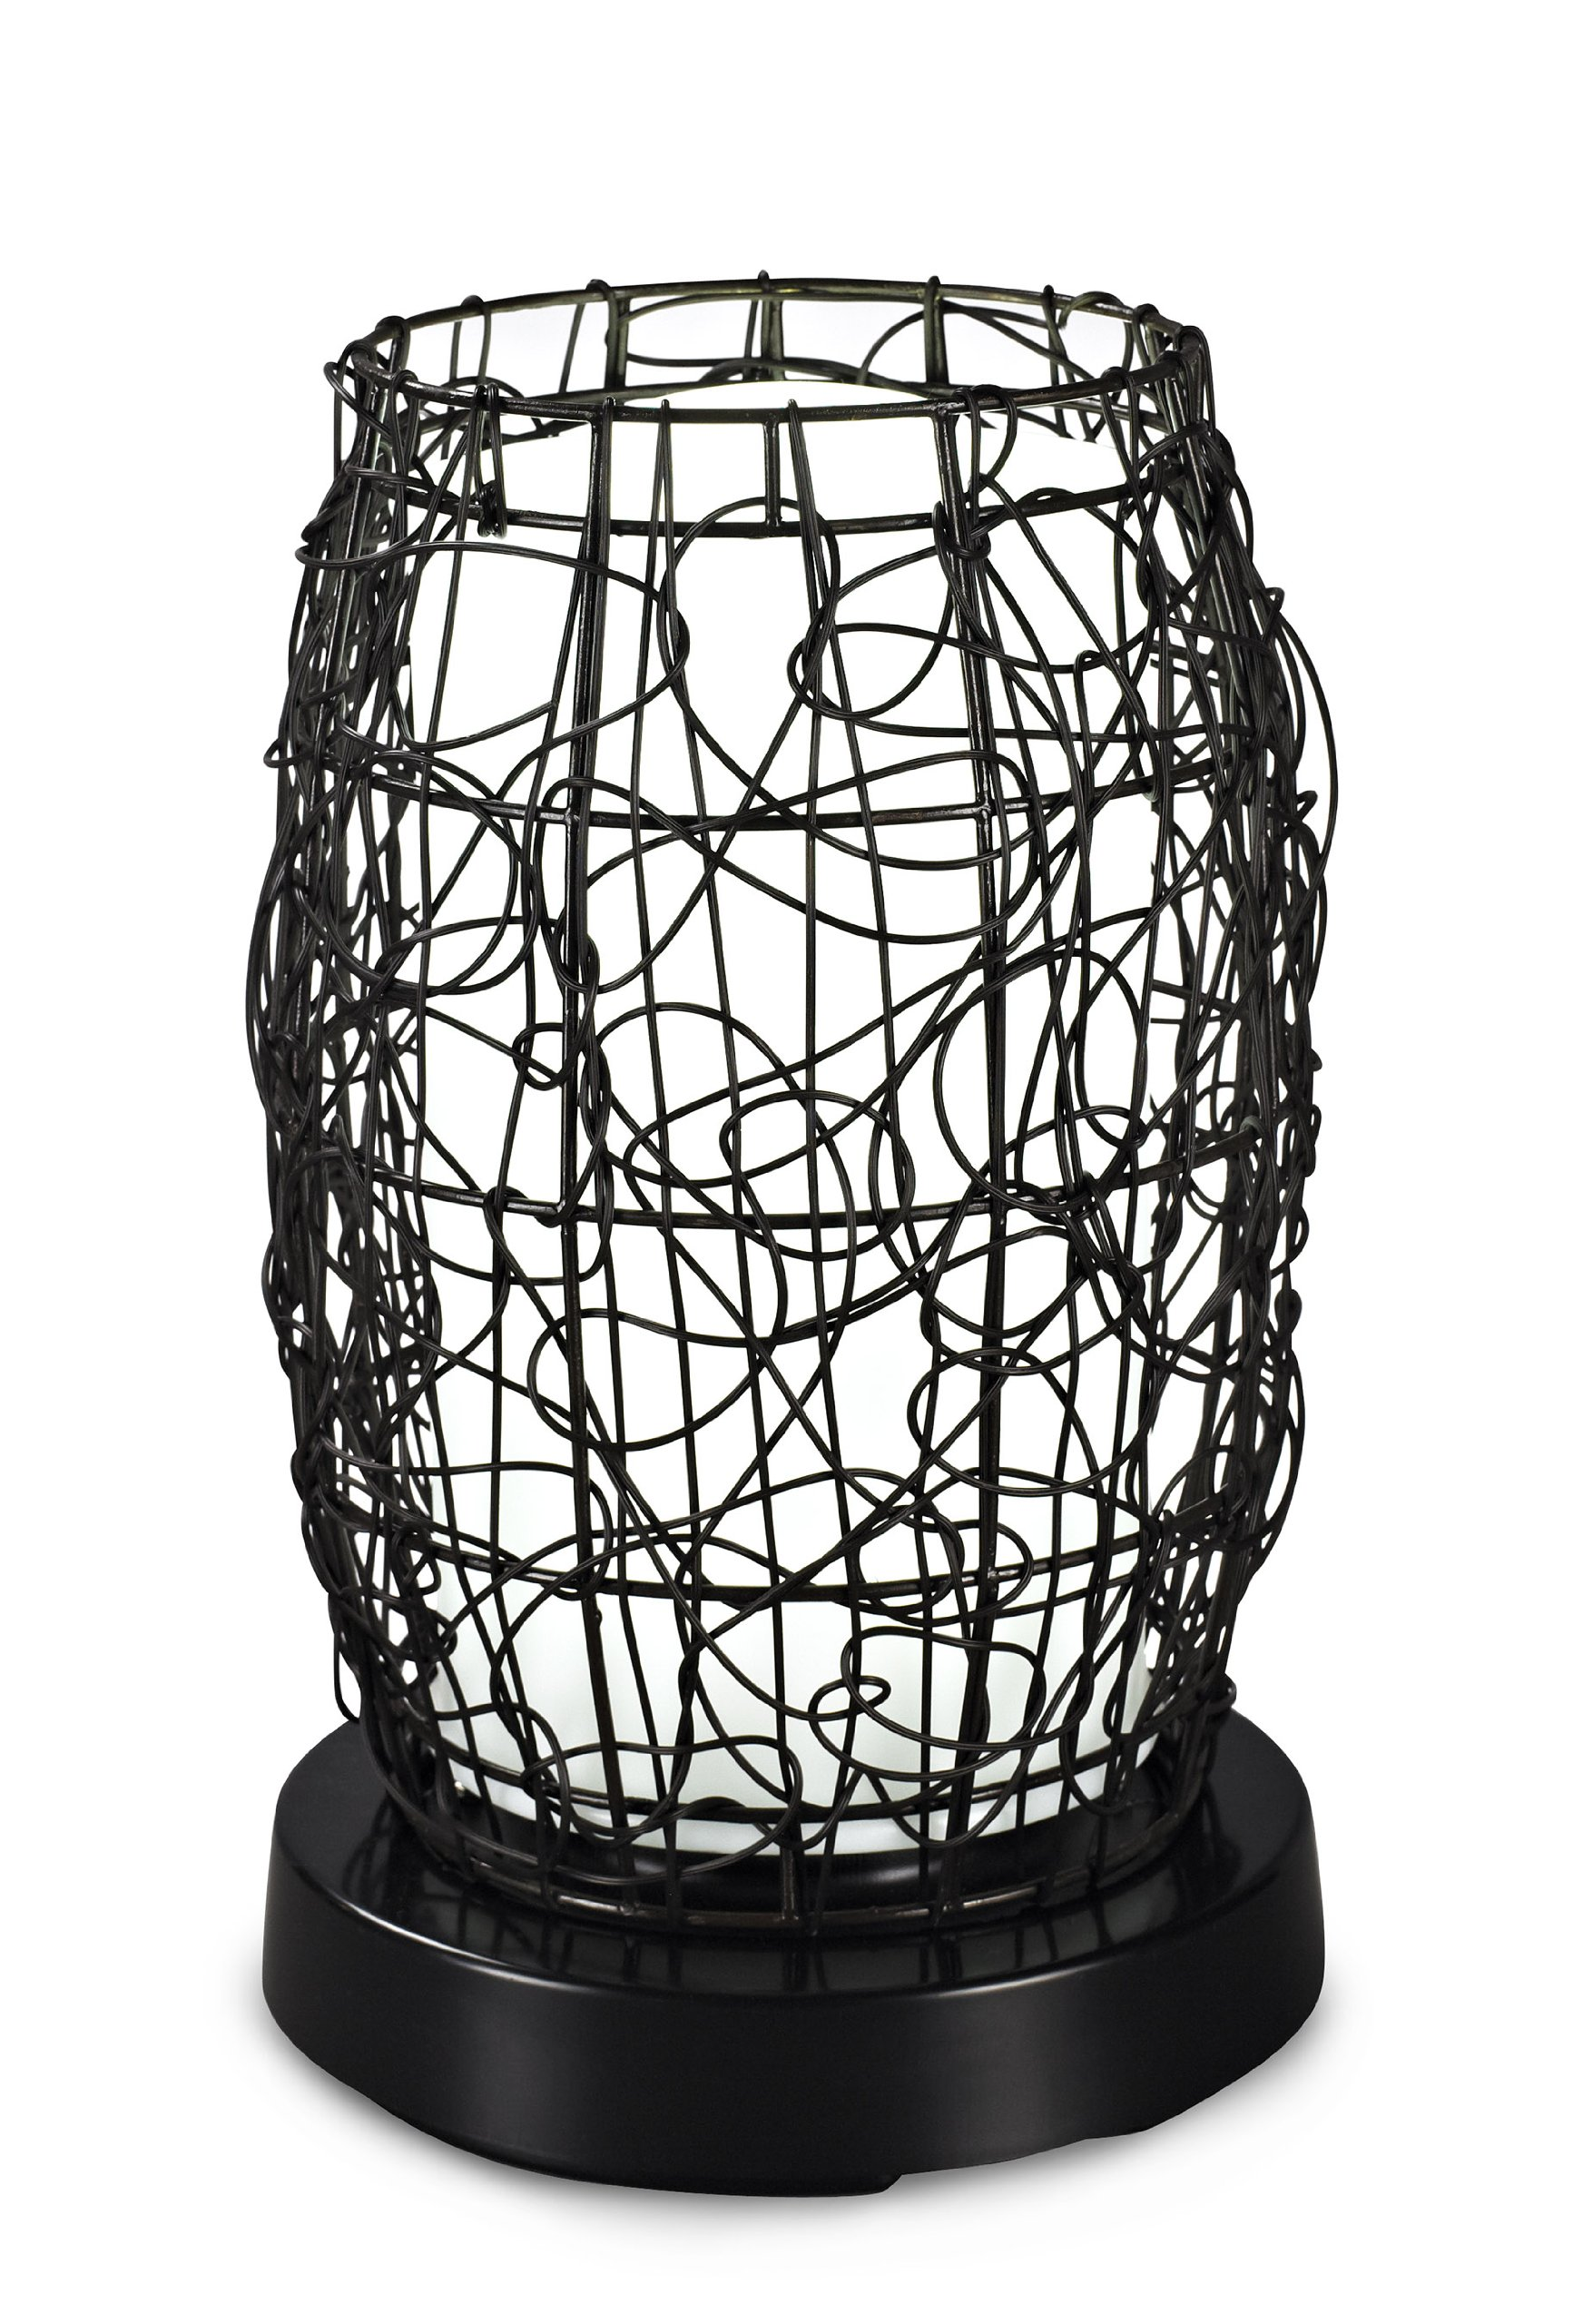 Patio Living Concepts Patioglo Led Lamps Table Lamp Bright